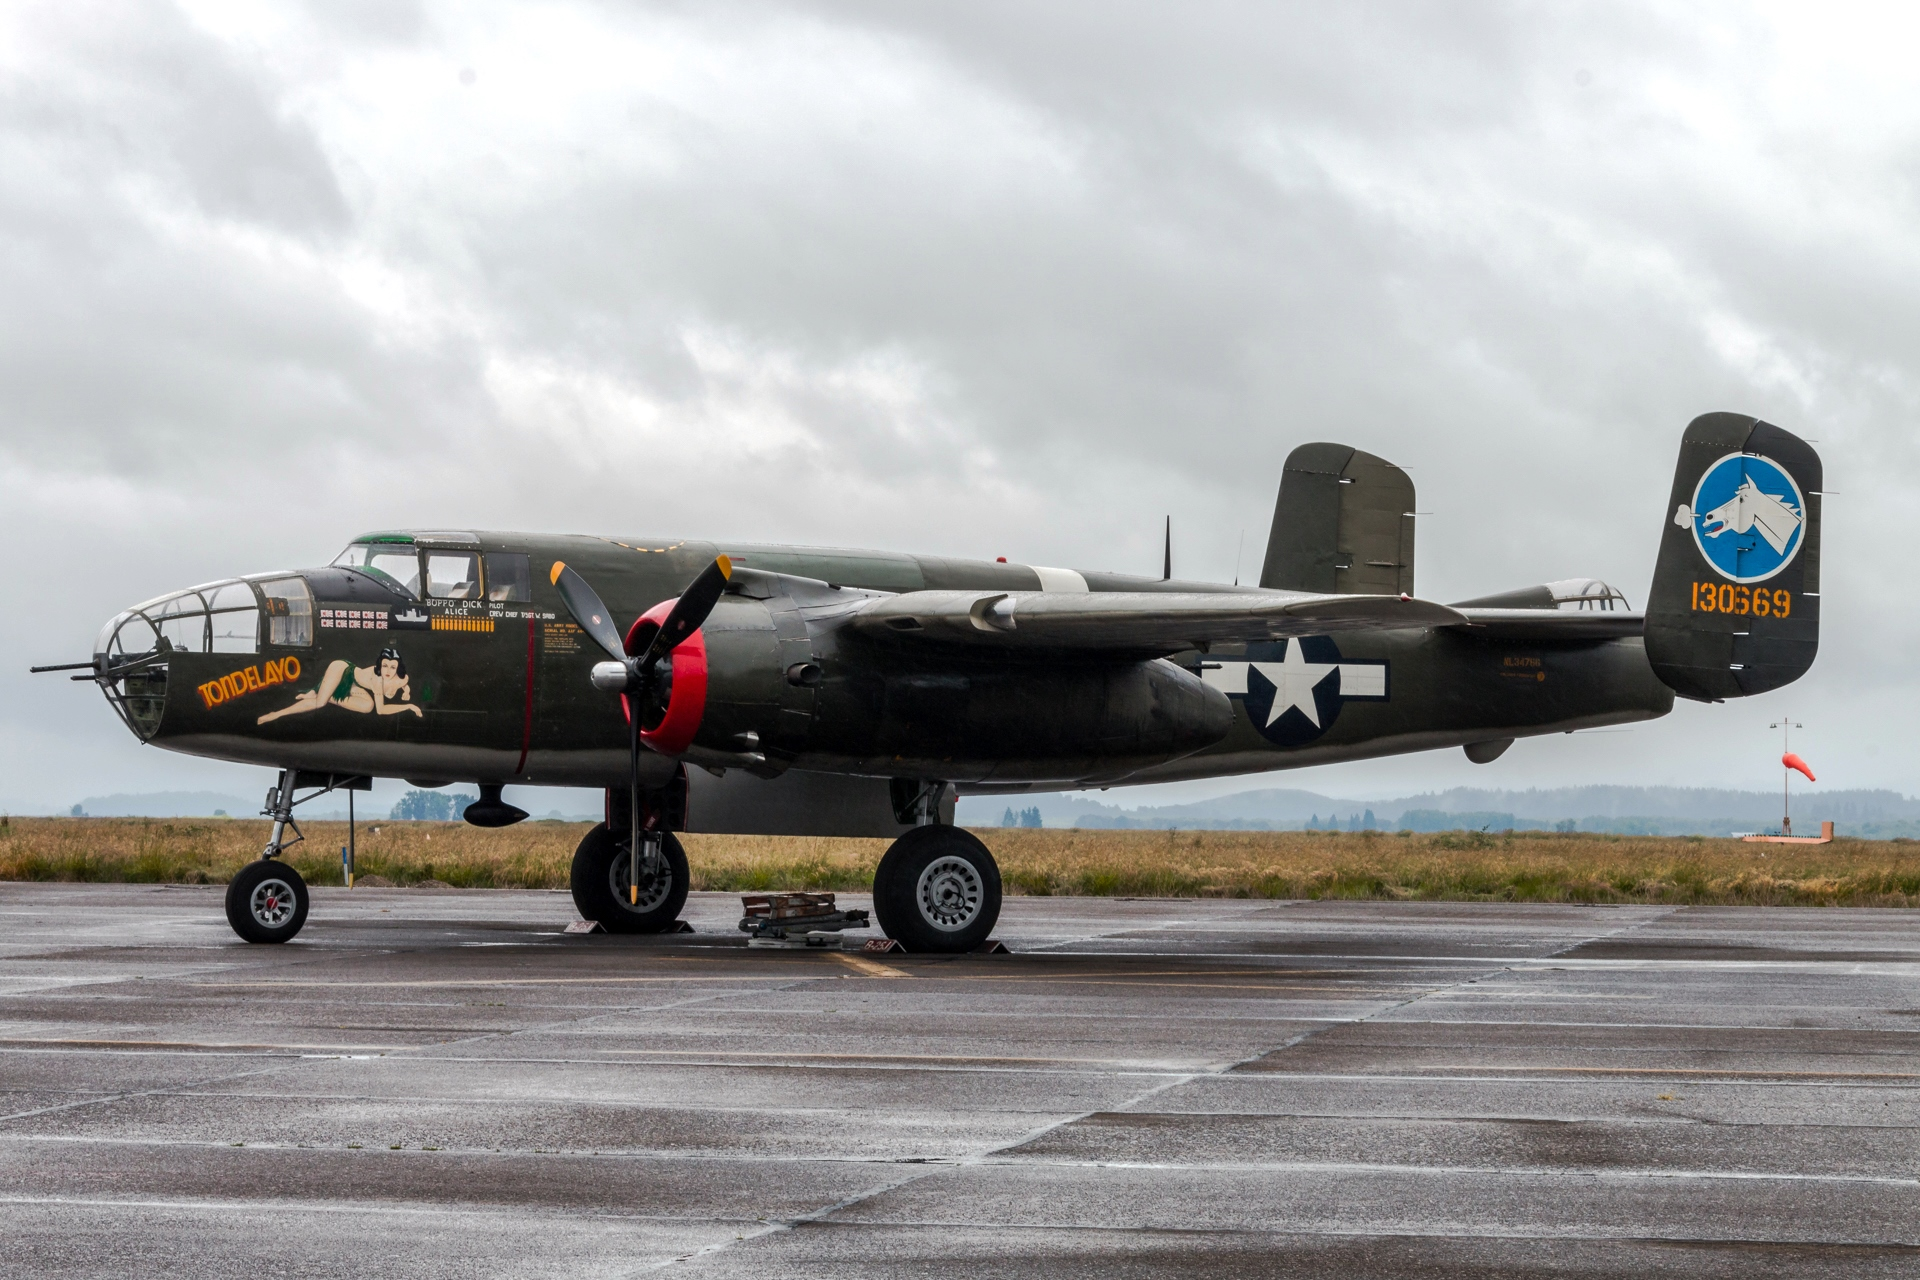 World War II era aircraft are at the Corvallis Airport through noon Friday as part of the Wings of Freedom tour put on by the Collings Foundation. (Ray Whittemore Photography)